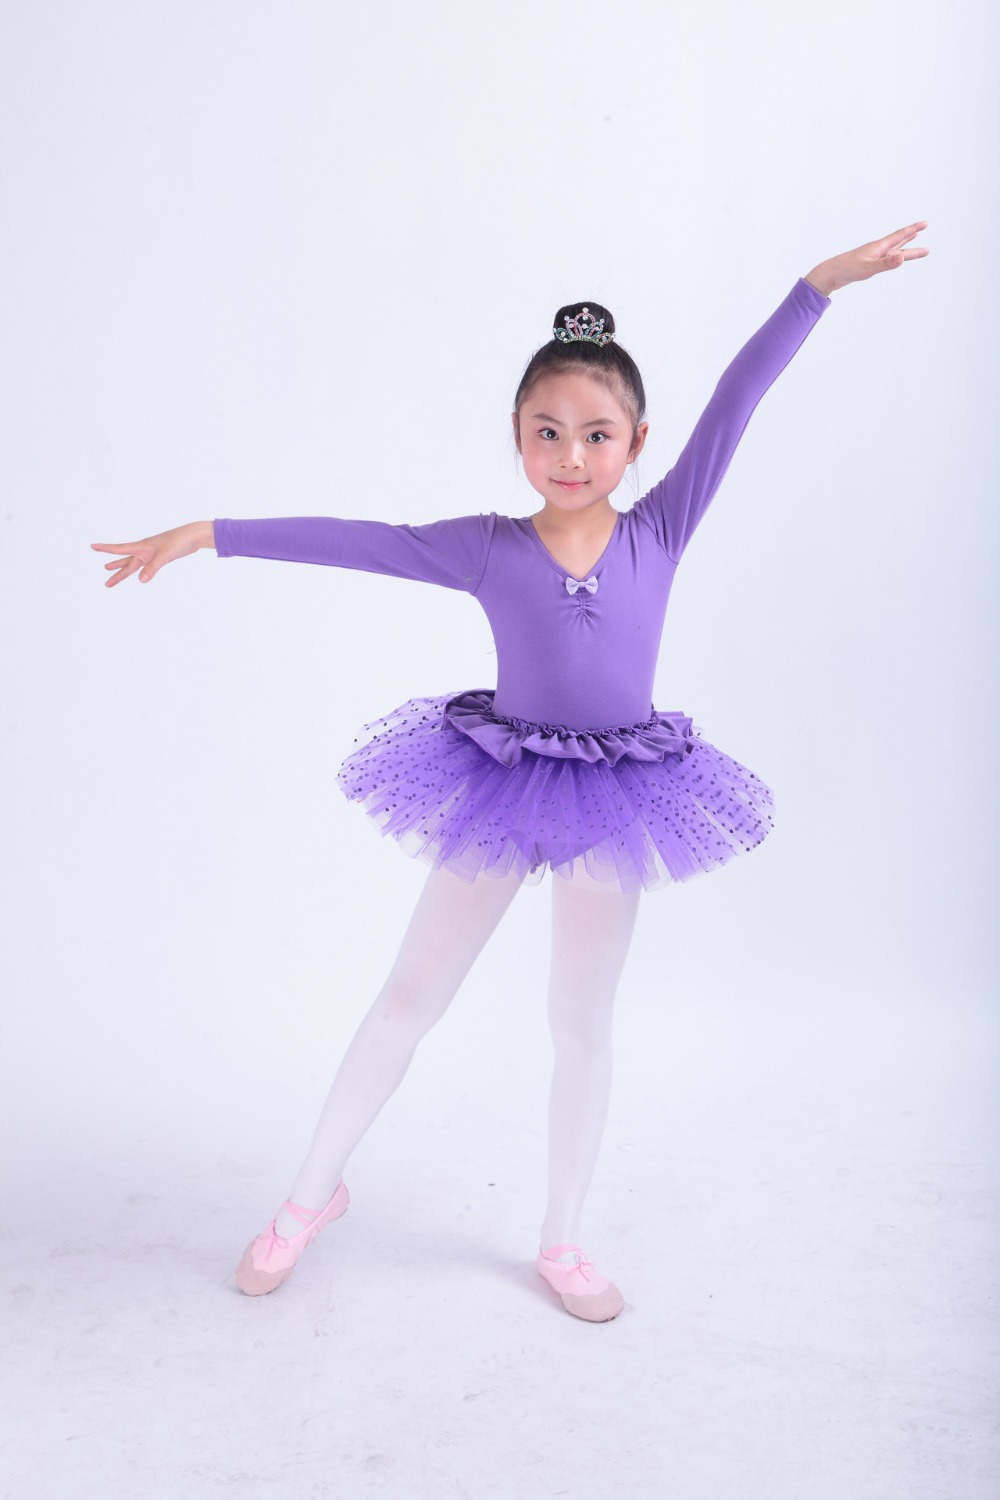 Play Ballet Dancer Dress Up online on jelly555.ml Every day new Girls Games online! Ballet Dancer Dress Up is Safe, Cool to play and Free!5/5(4K).